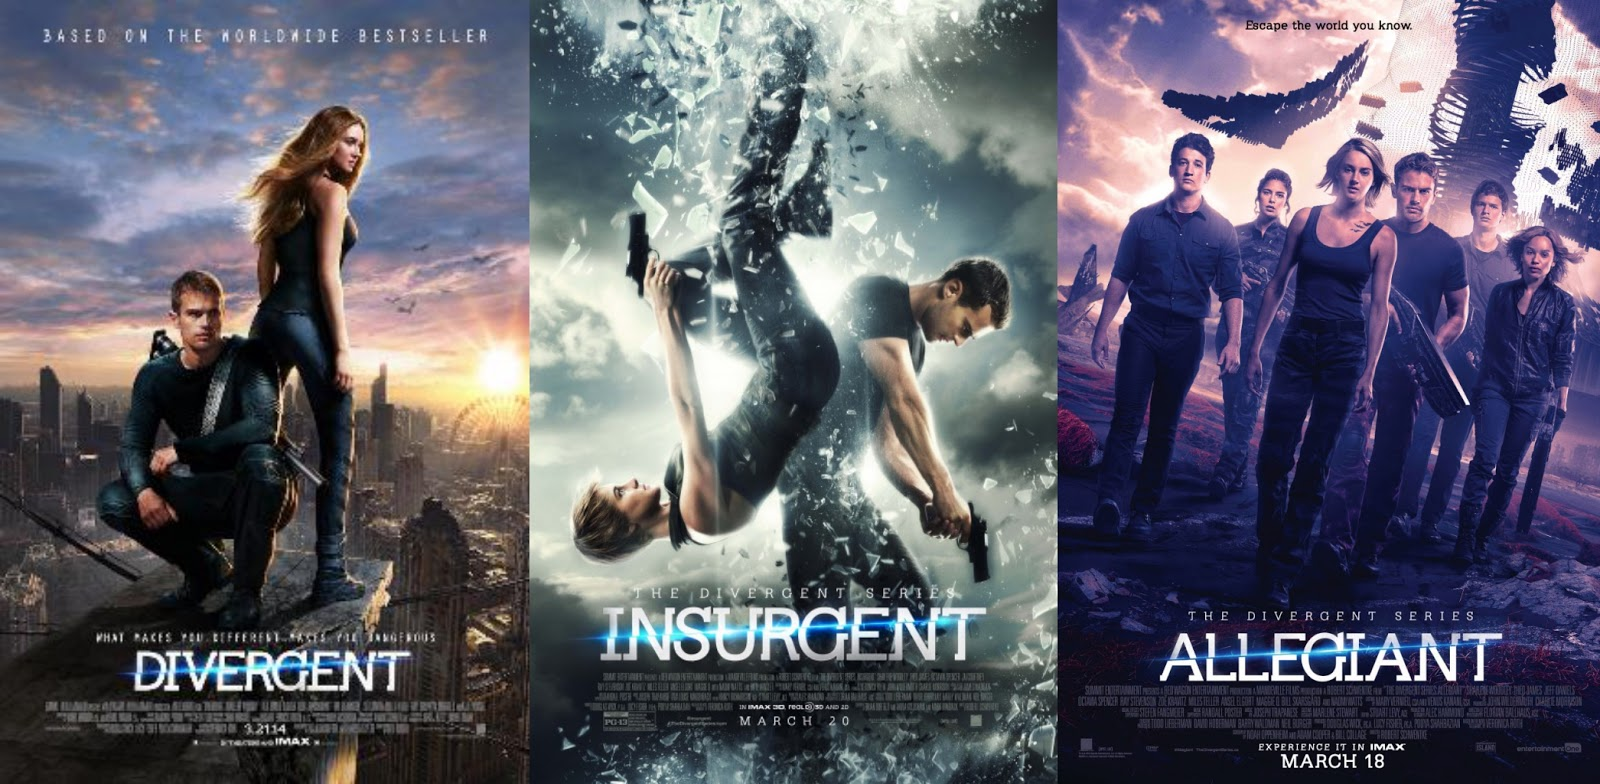 The three theatrical movie adaptation posters side-by-side showing the main characters on a ledge overlooking the city, falling back-to-back, and advancing with their allies.